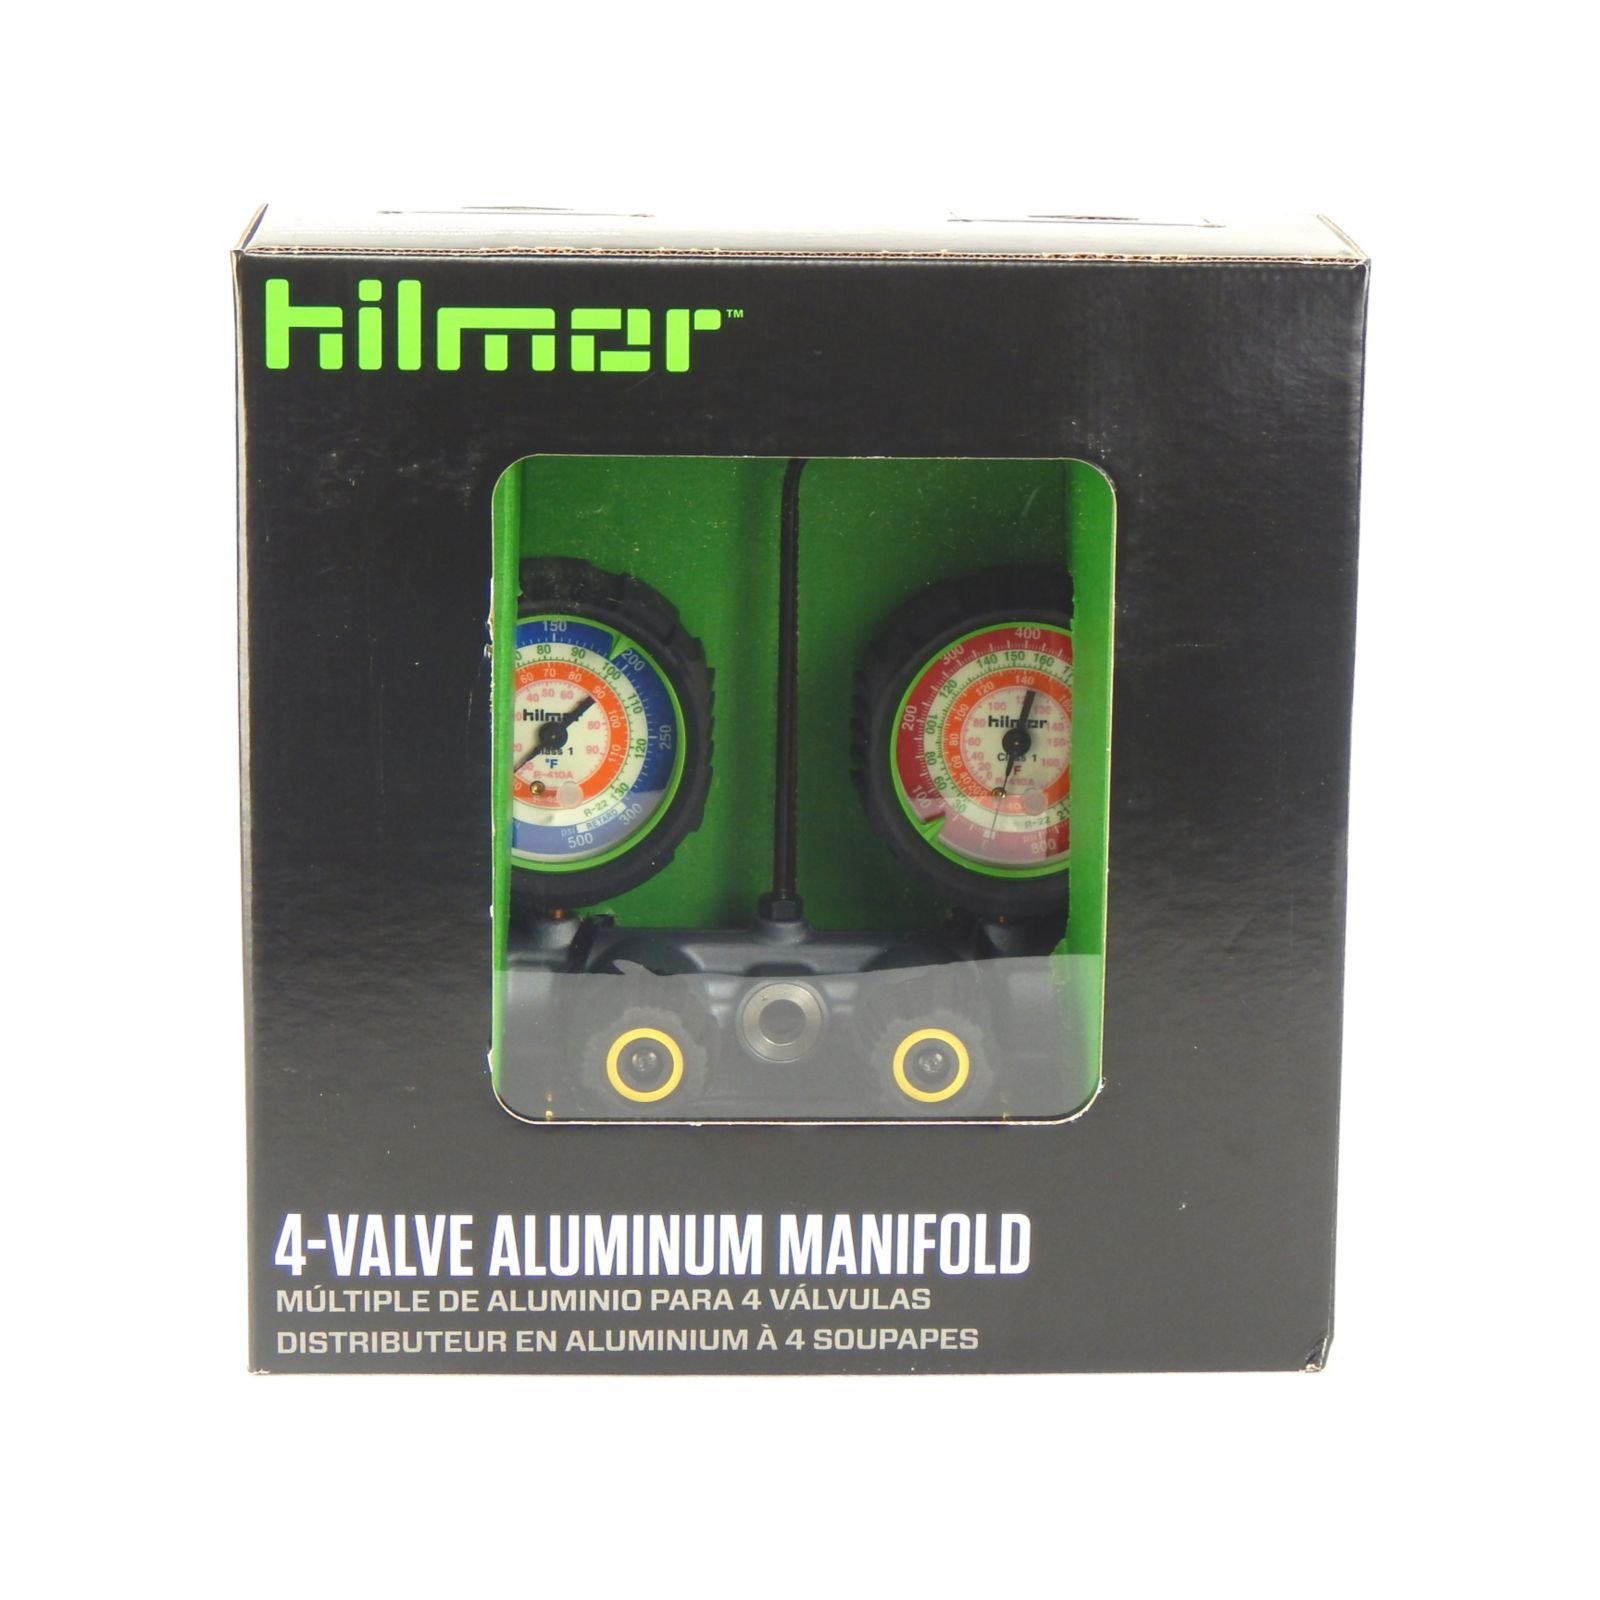 hilmor 1839132 - 4 Valve Aluminum Manifold For R22, R404 & R410A, Plastic Backed